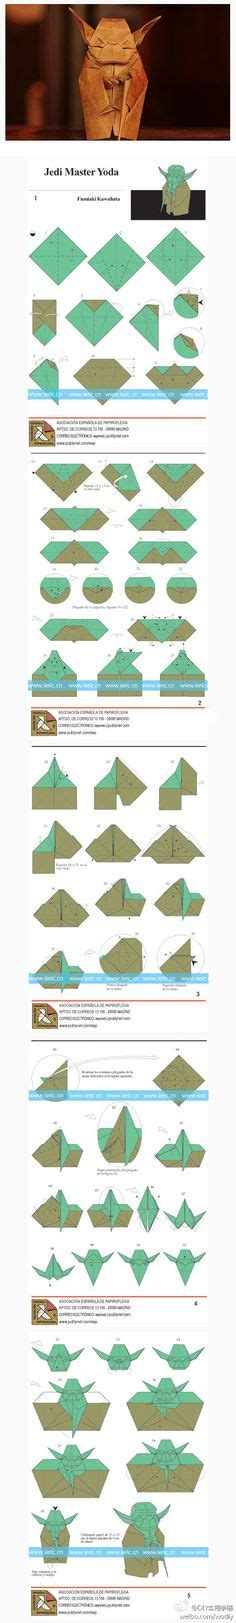 How Do You Make Origami Yoda - elephant origami i to try this origami